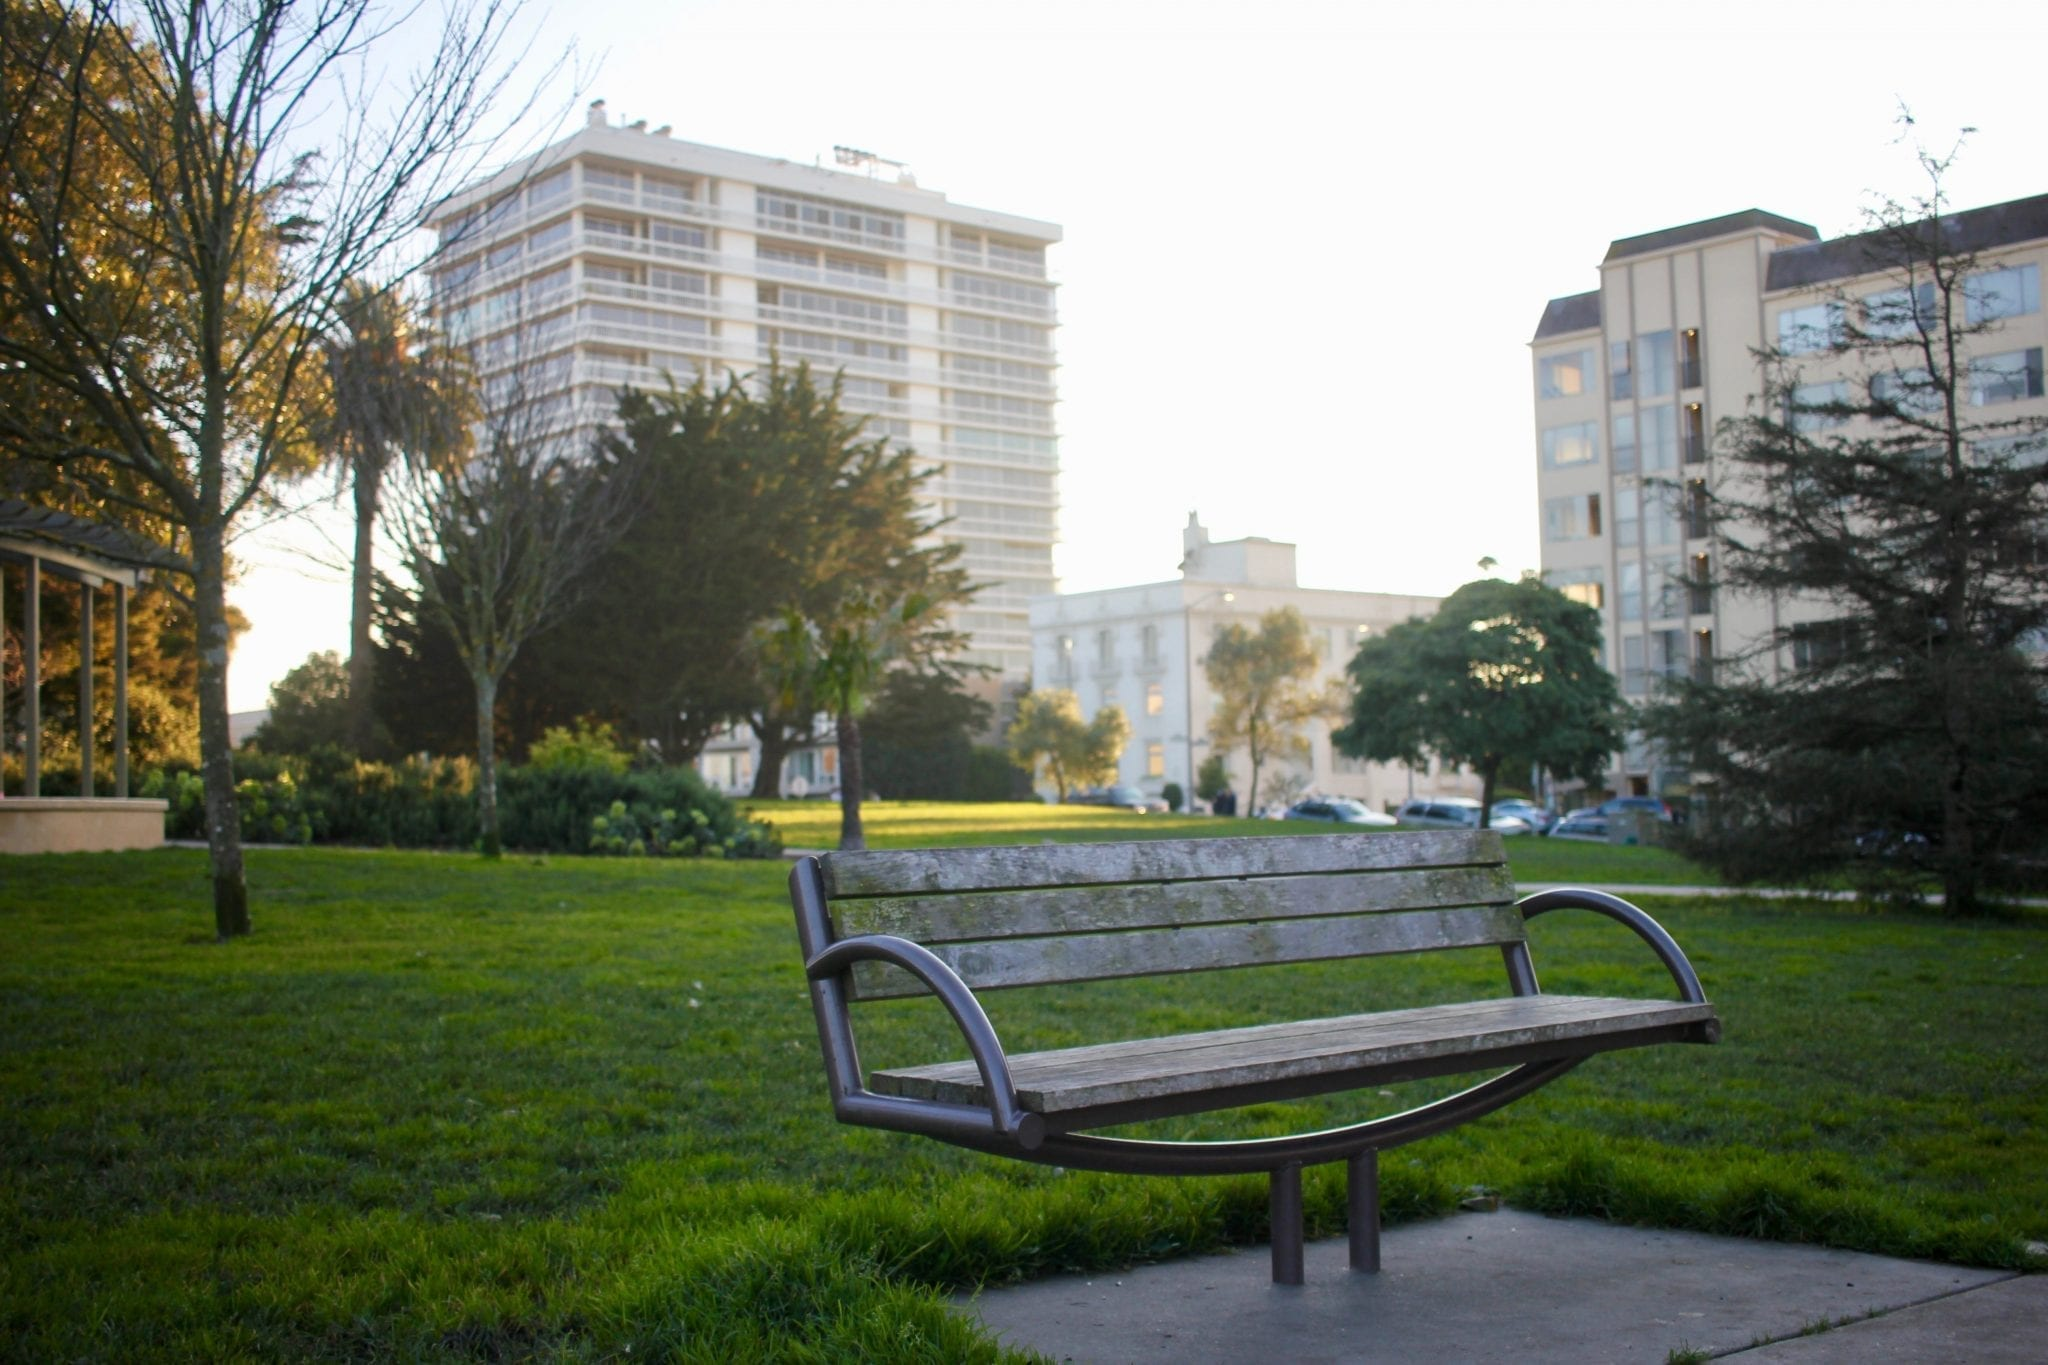 Park bench in San Francisco; image by Thomas Le, via Unsplash.com.